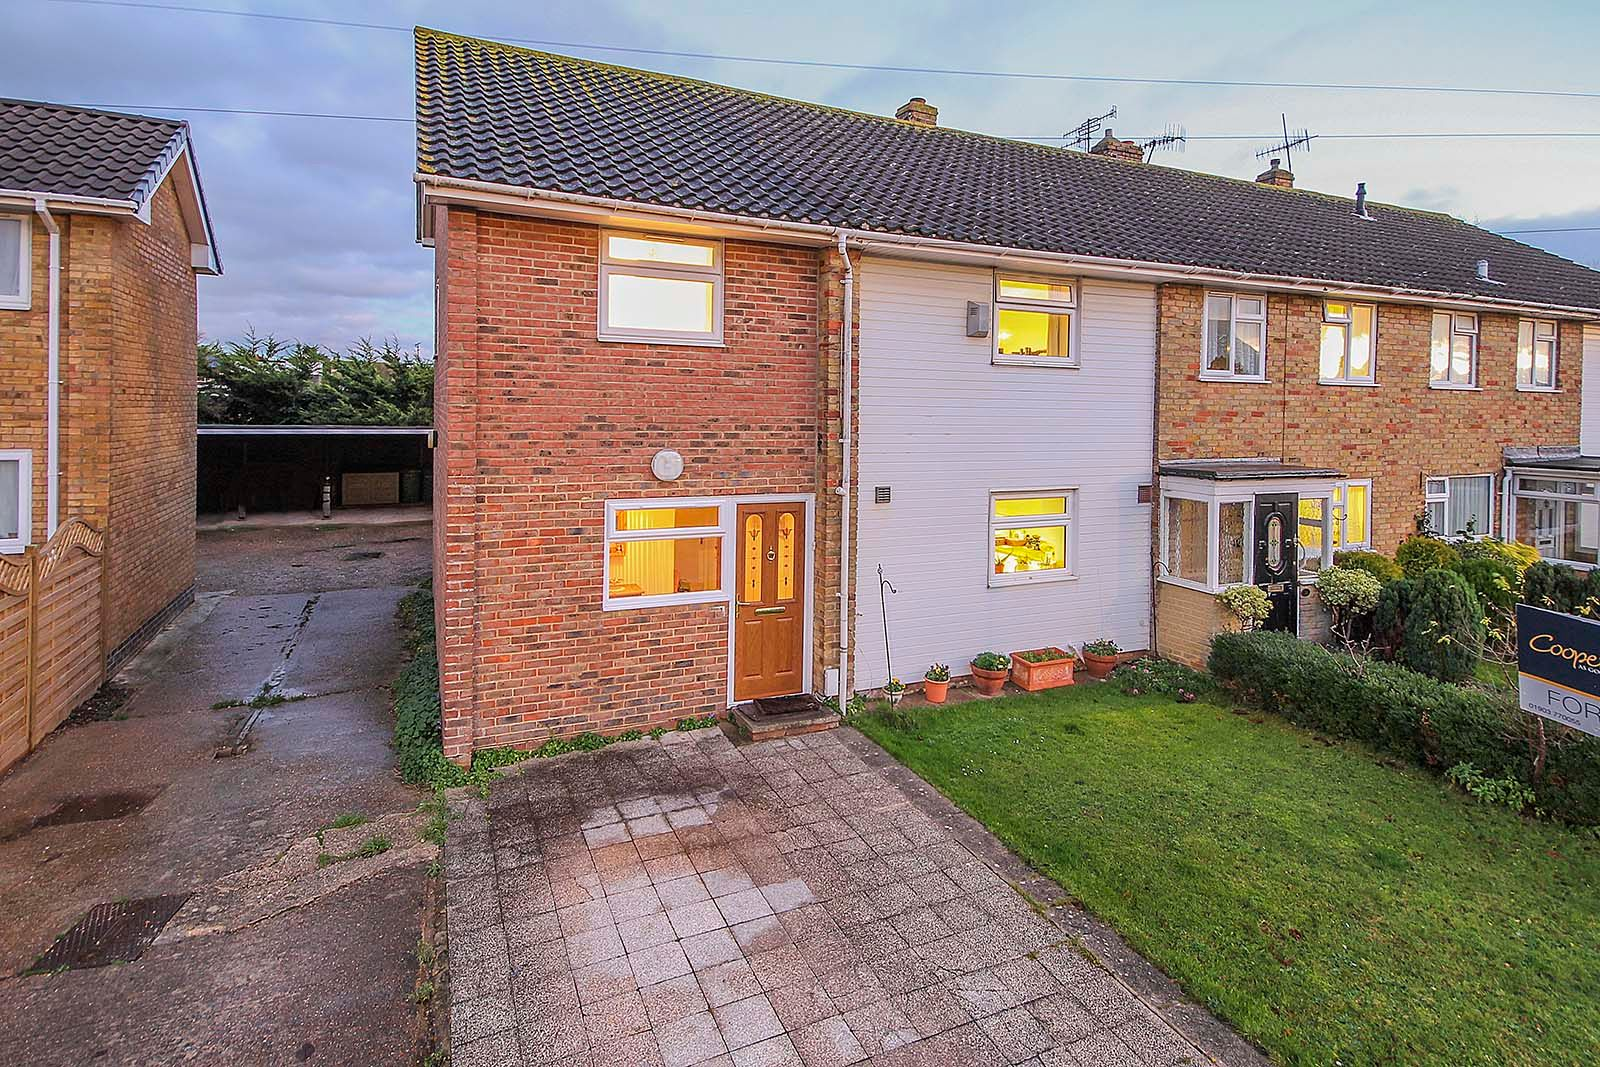 4 bed house for sale in Bellview Road  - Property Image 13